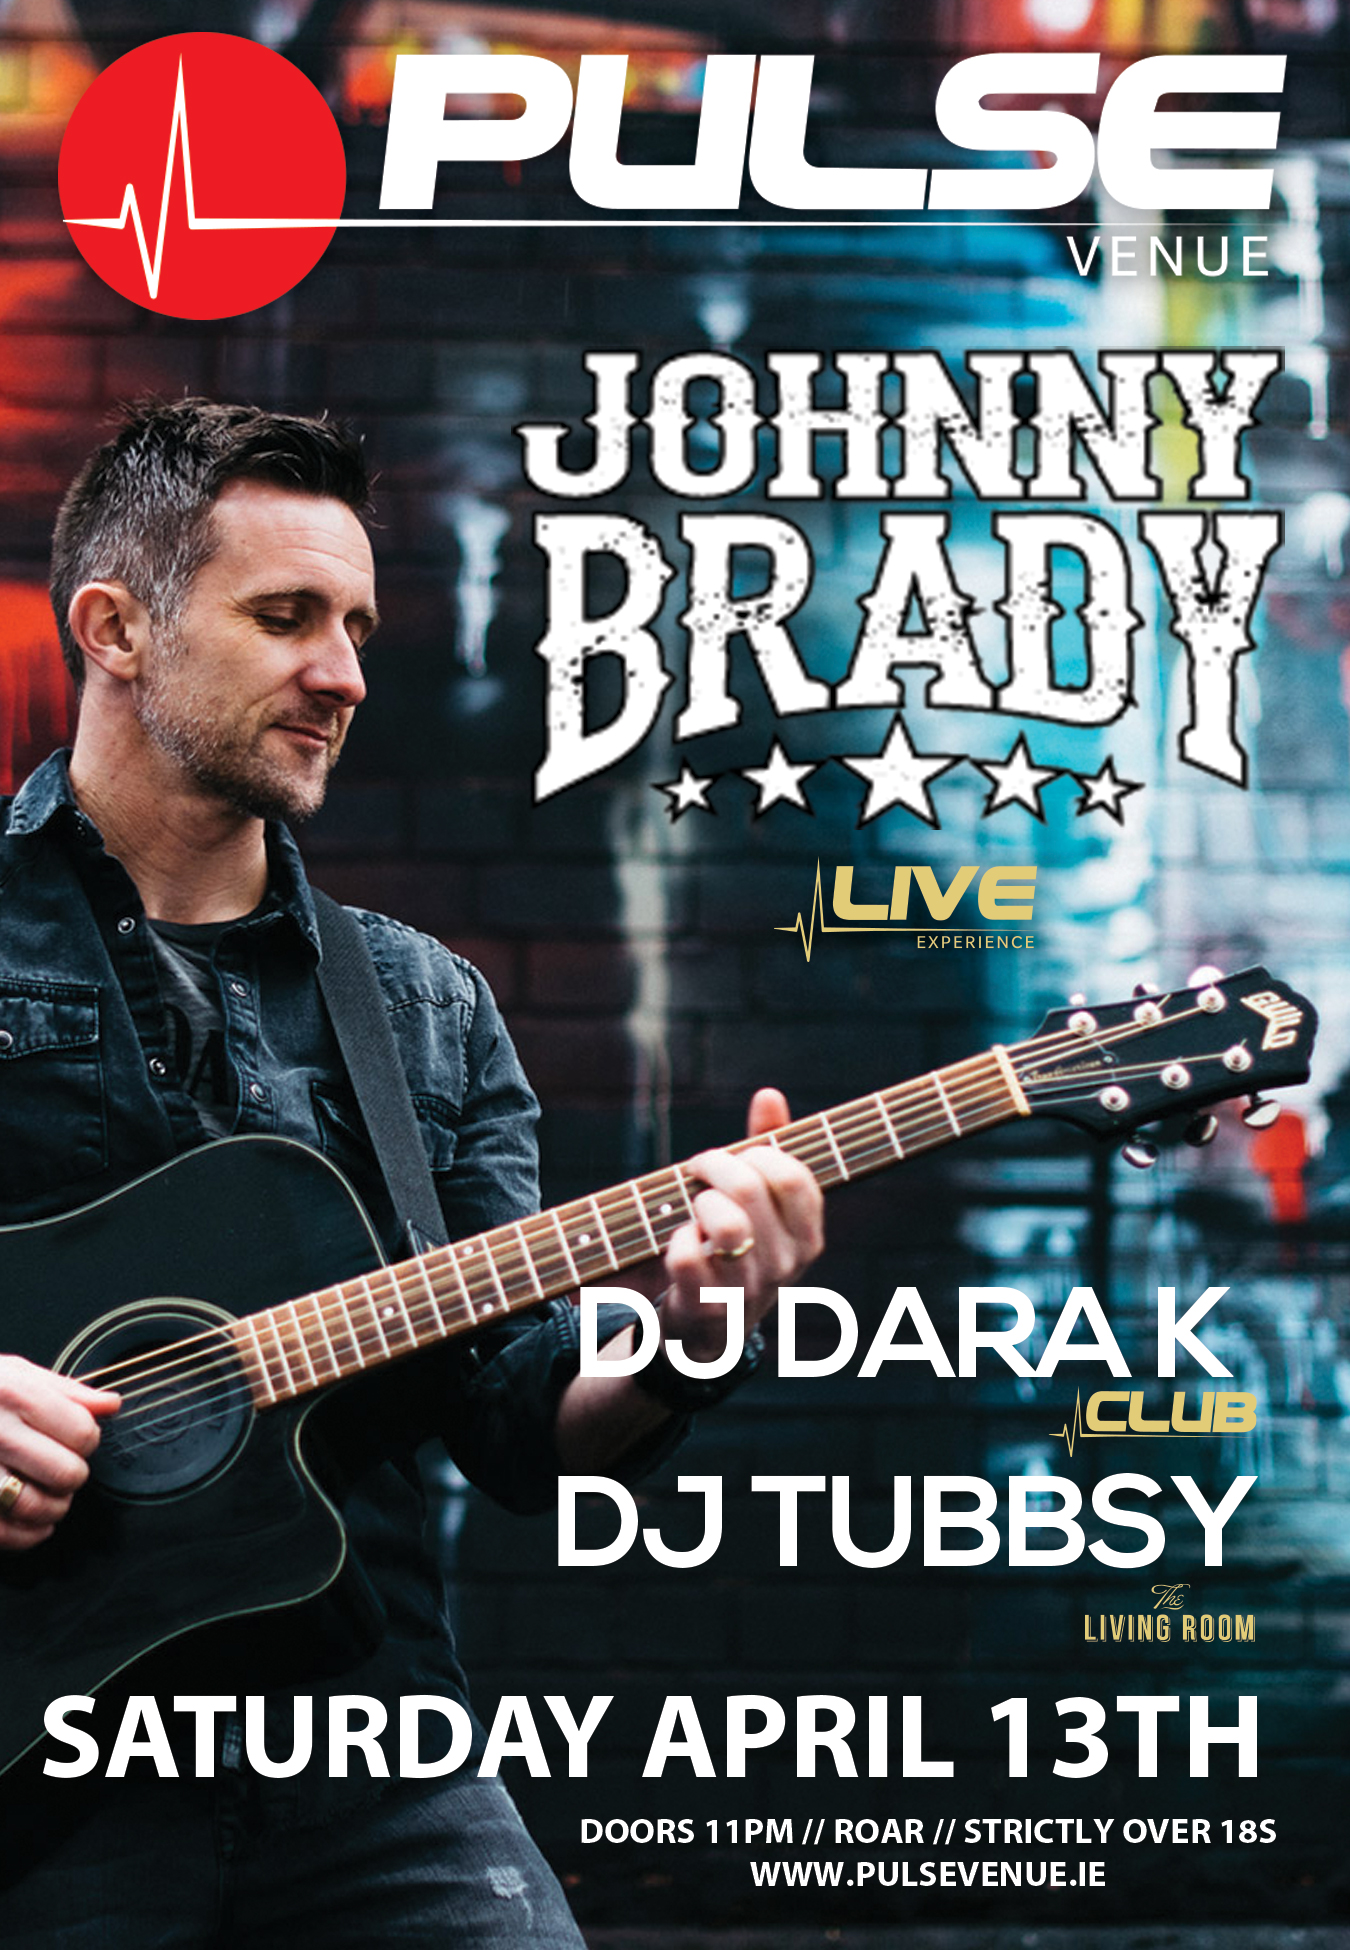 pulse-venue---johnny-brady-dara-k-dk-tubbsy-sat-april-13-2019.jpg